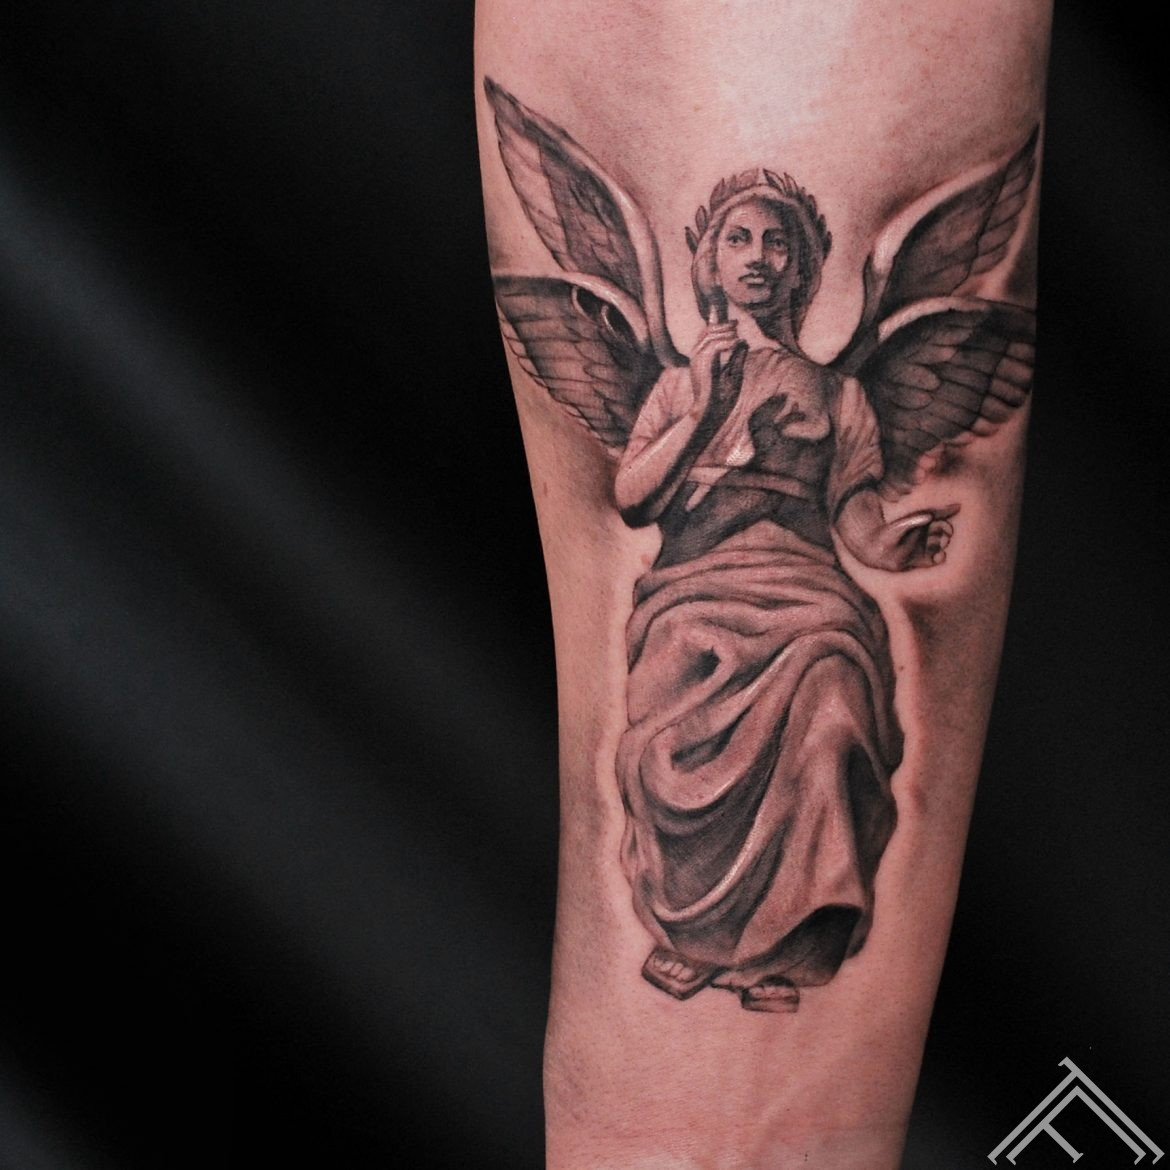 thunder-sasha-tattoo-angel-tattoofrequency-riga